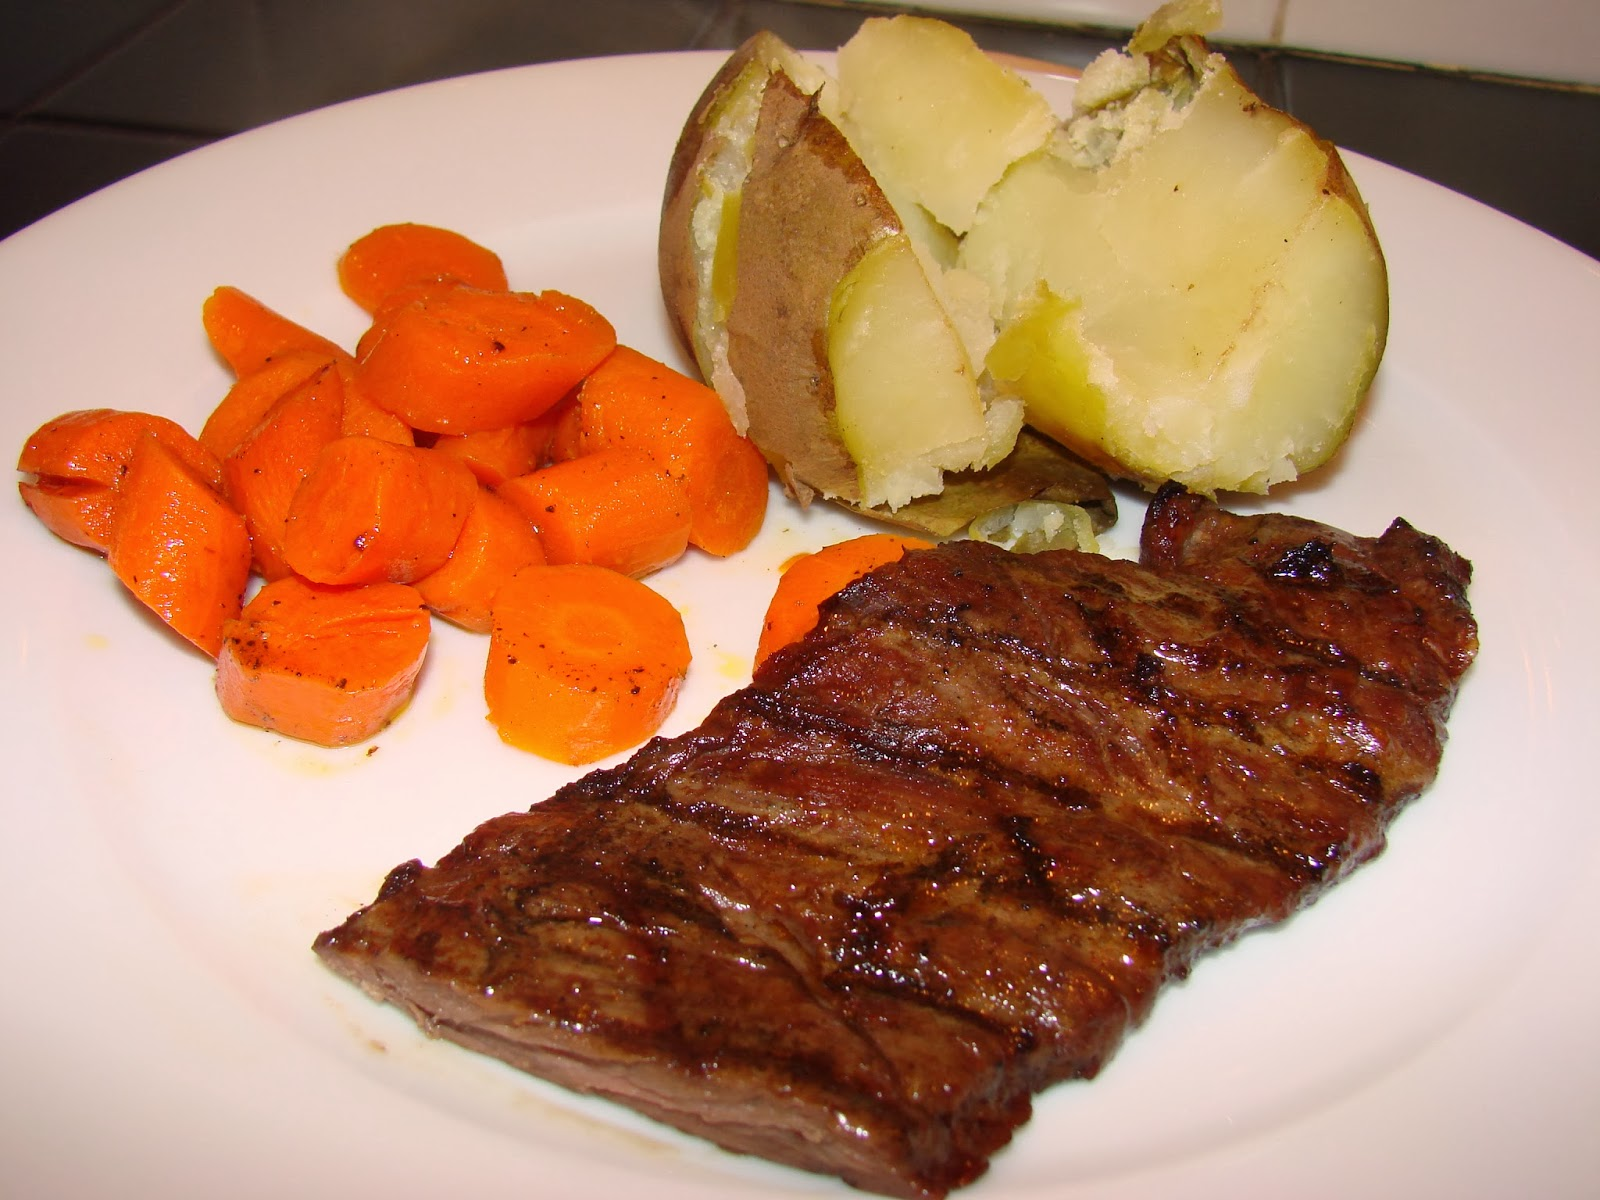 ... skirt steak with roasted potatoes and lemon recipe yummly skirt steak